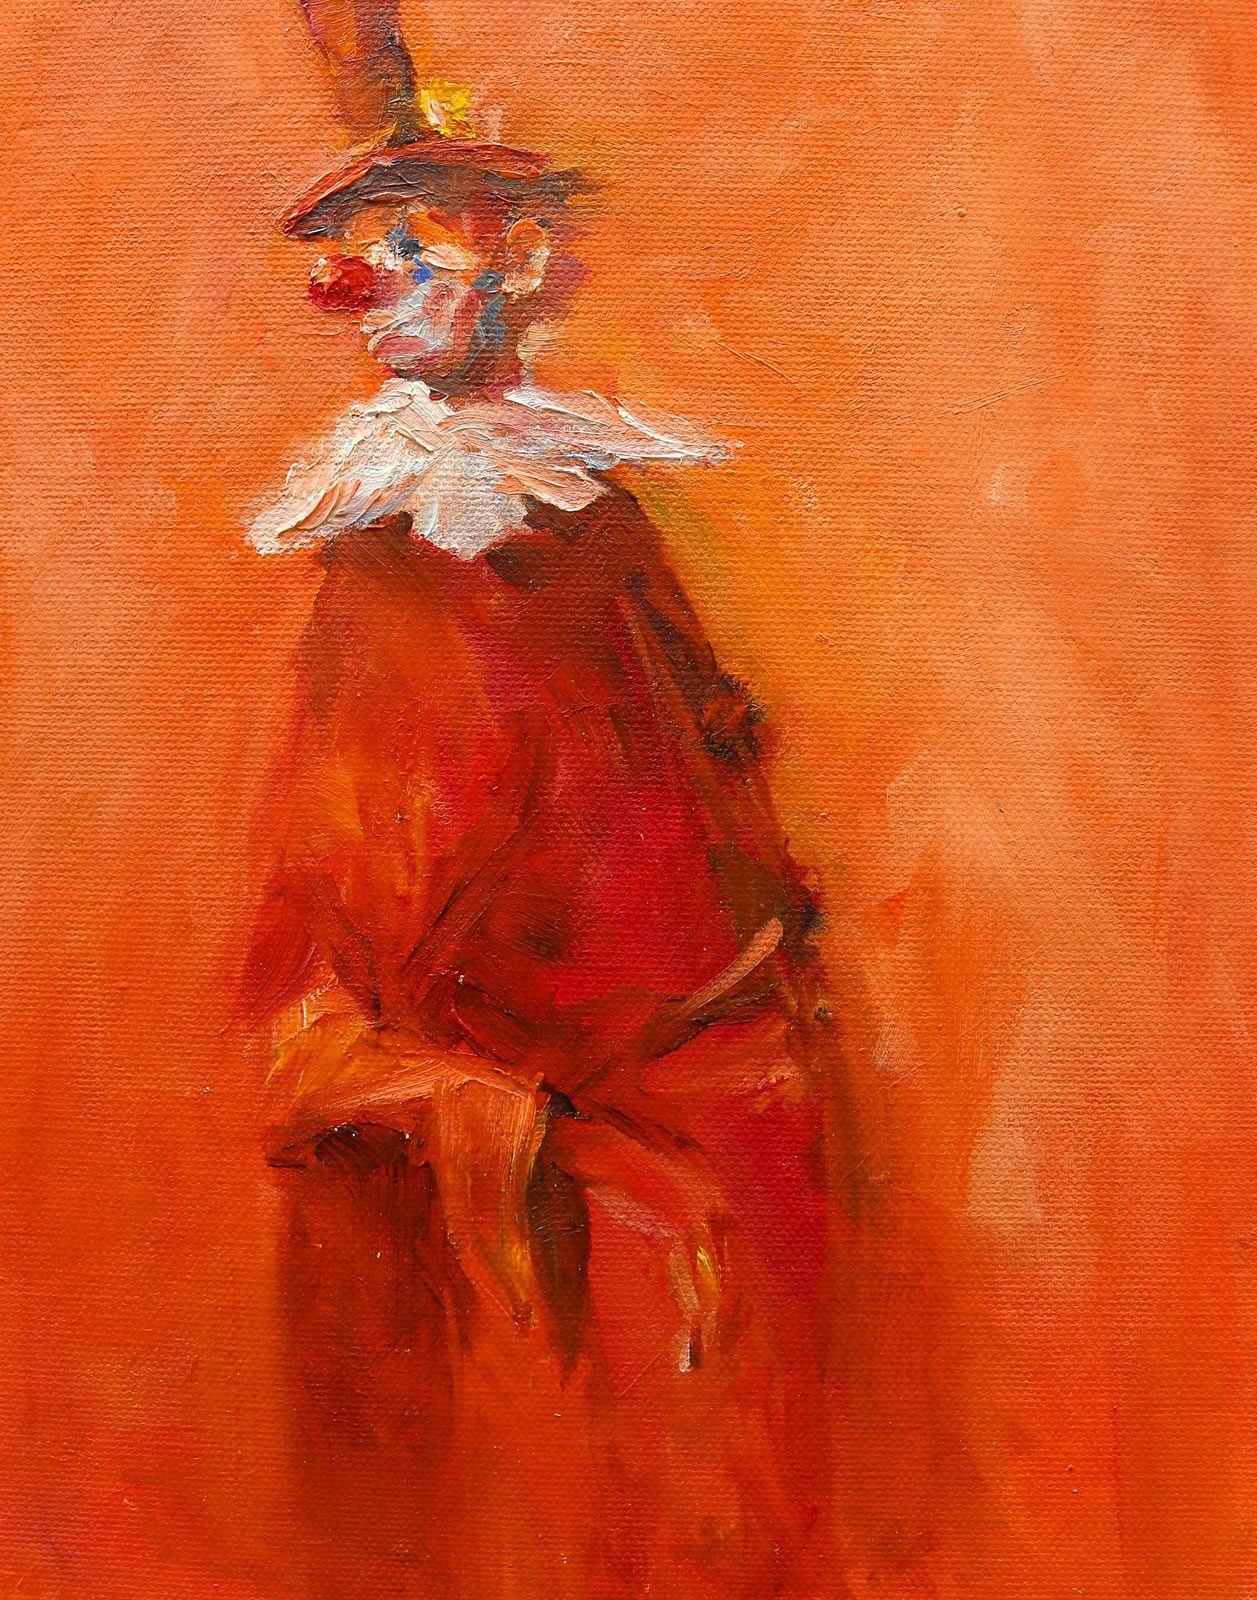 Oil painting study of clown by artist Stewart Taylor